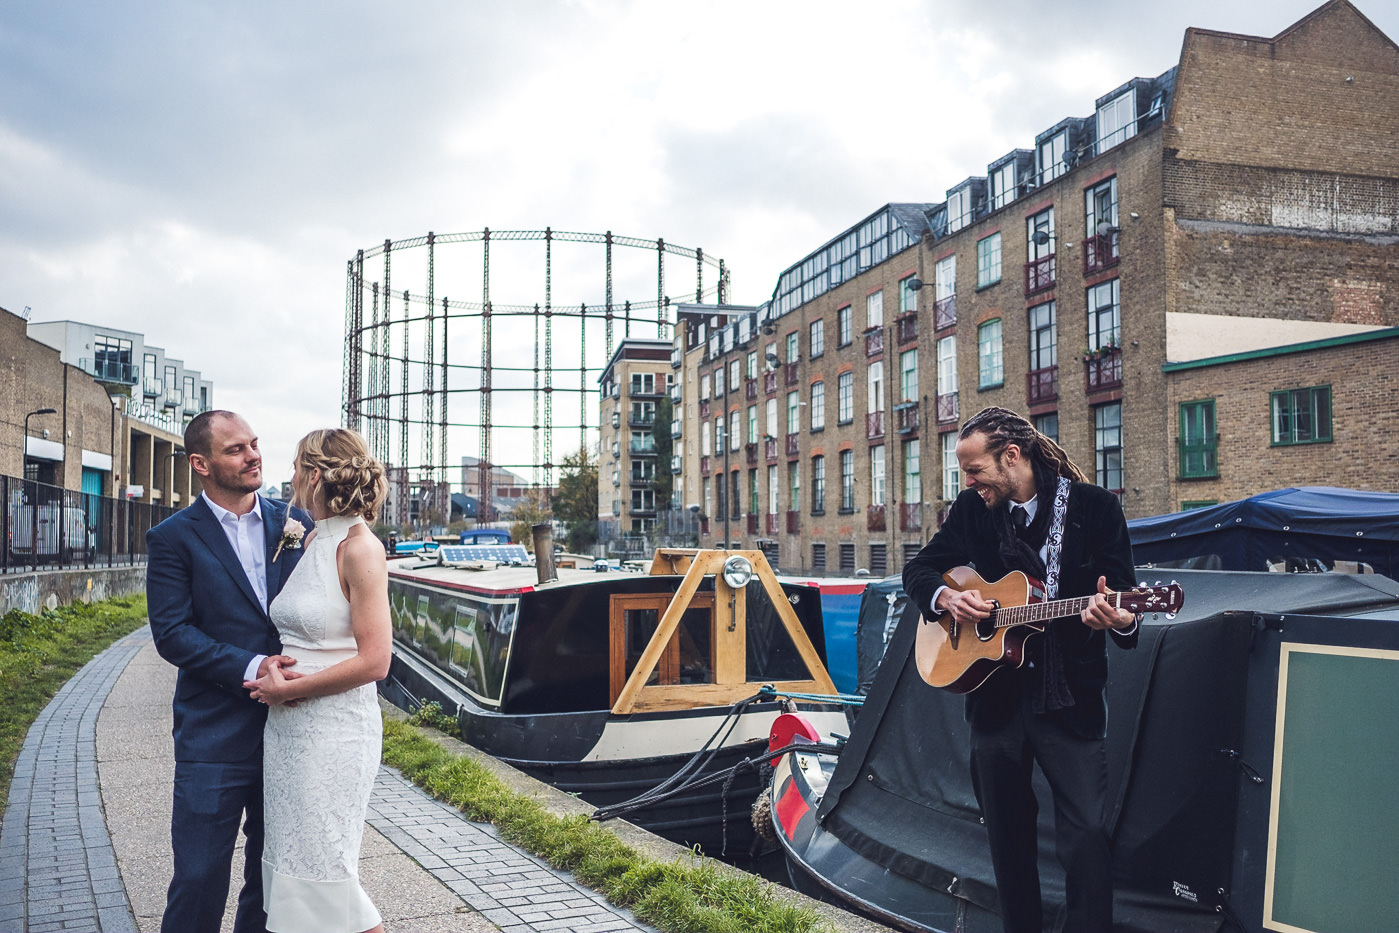 Acoustic guitar player Hackney Town Hall Elopement Photography London